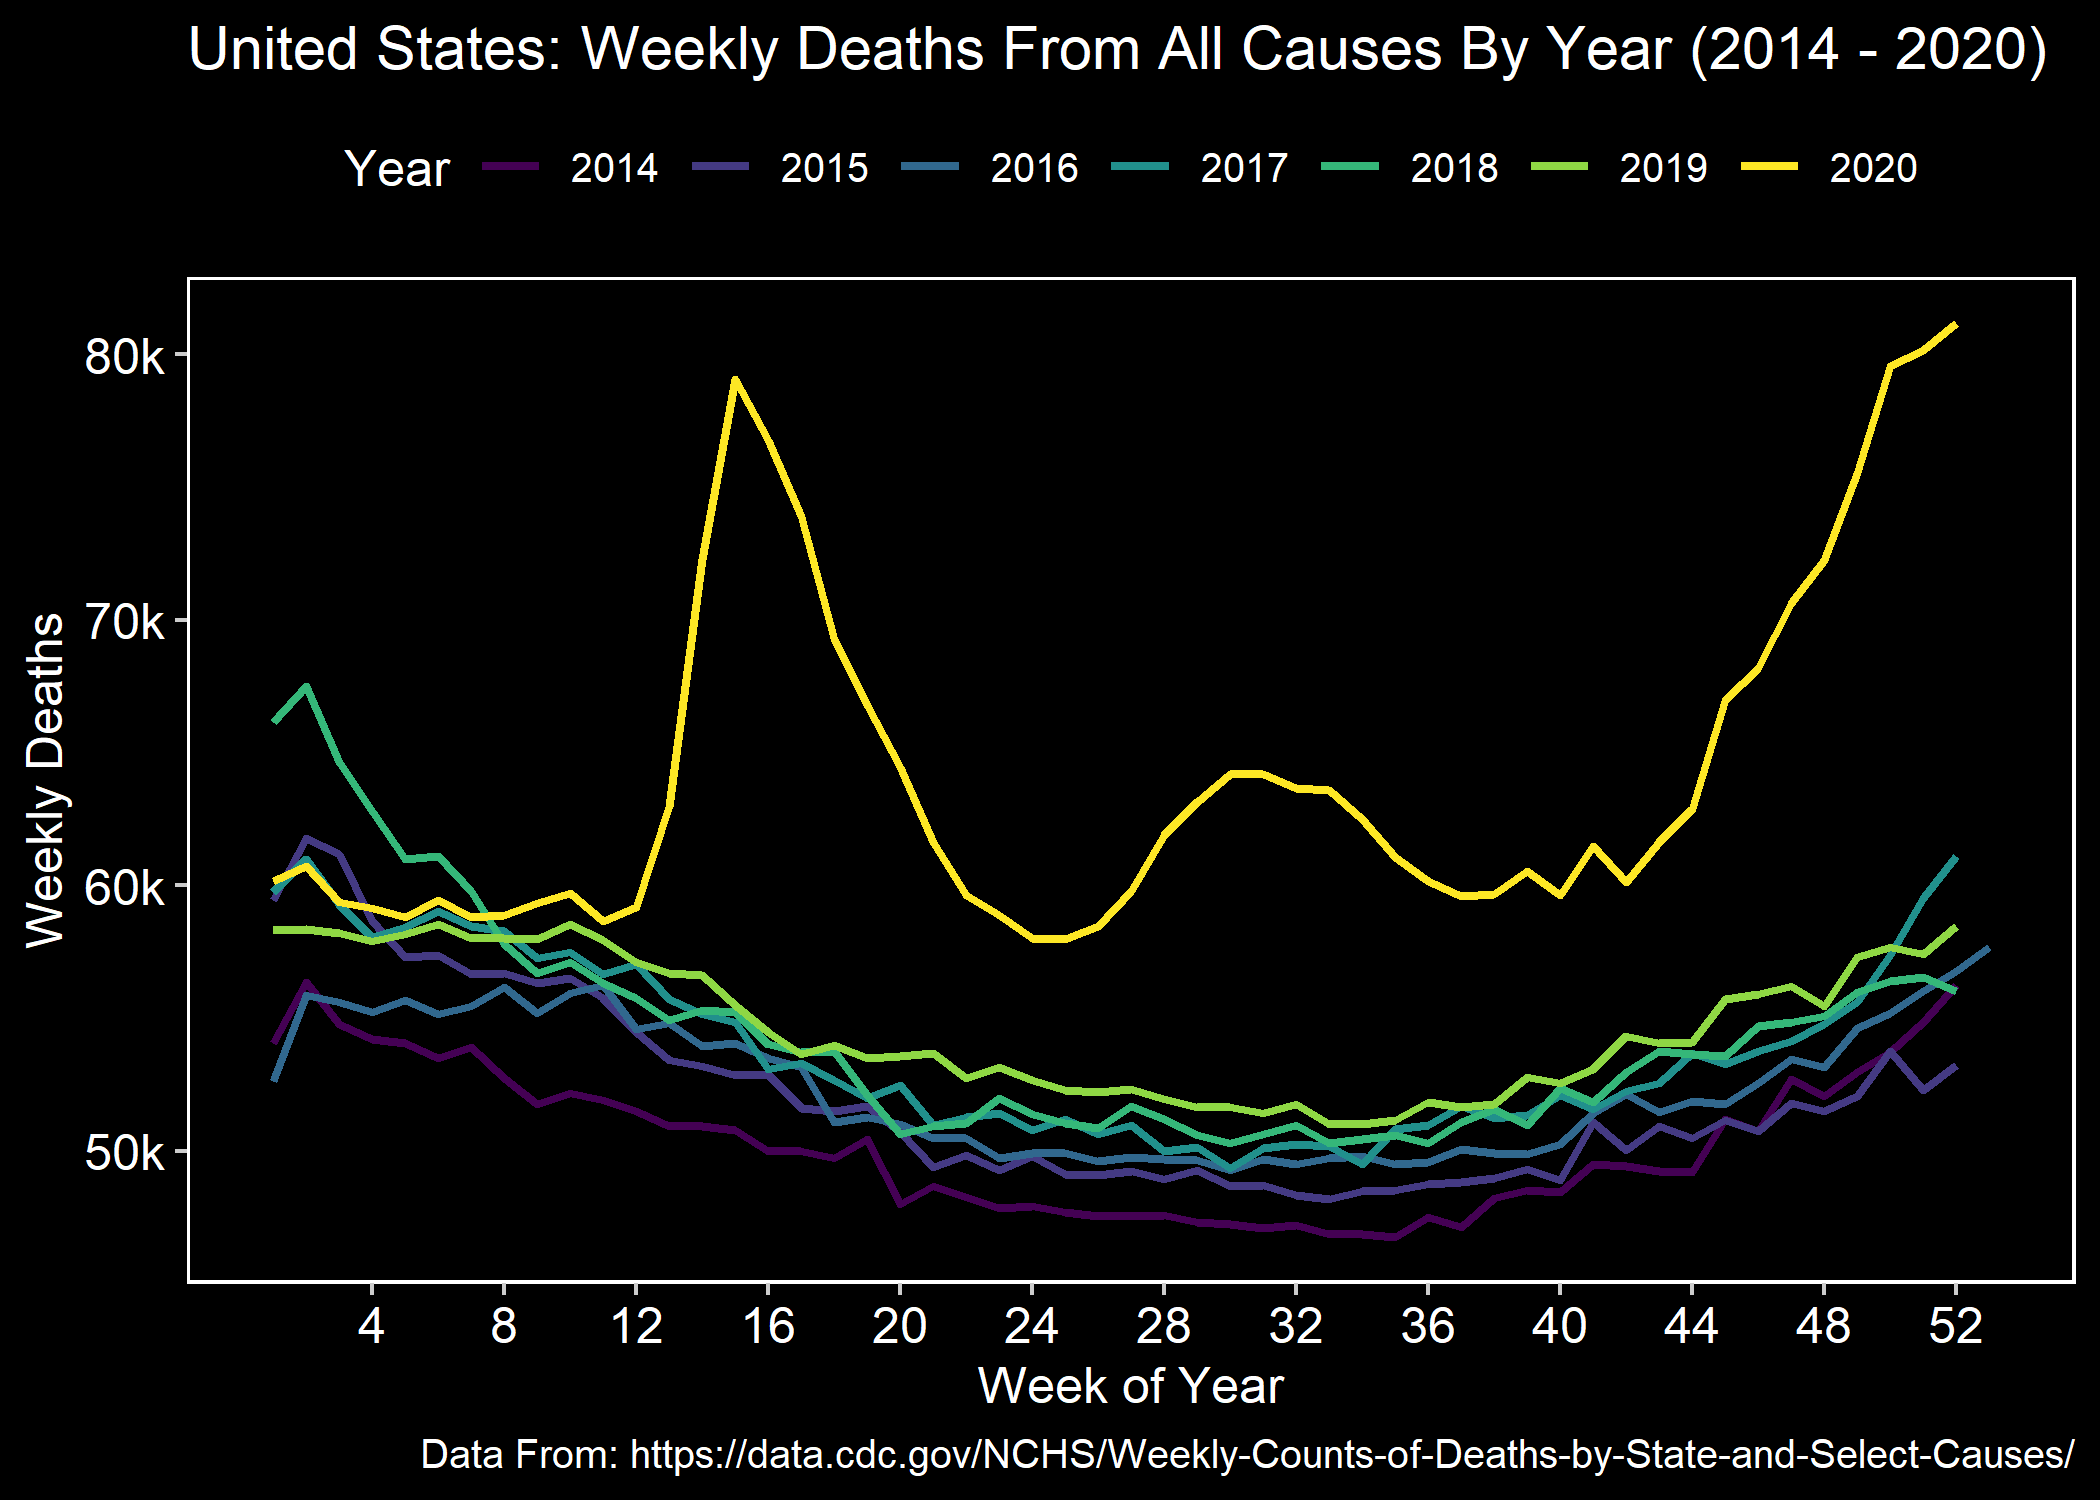 Graph showing excess deaths in the United States during 2020